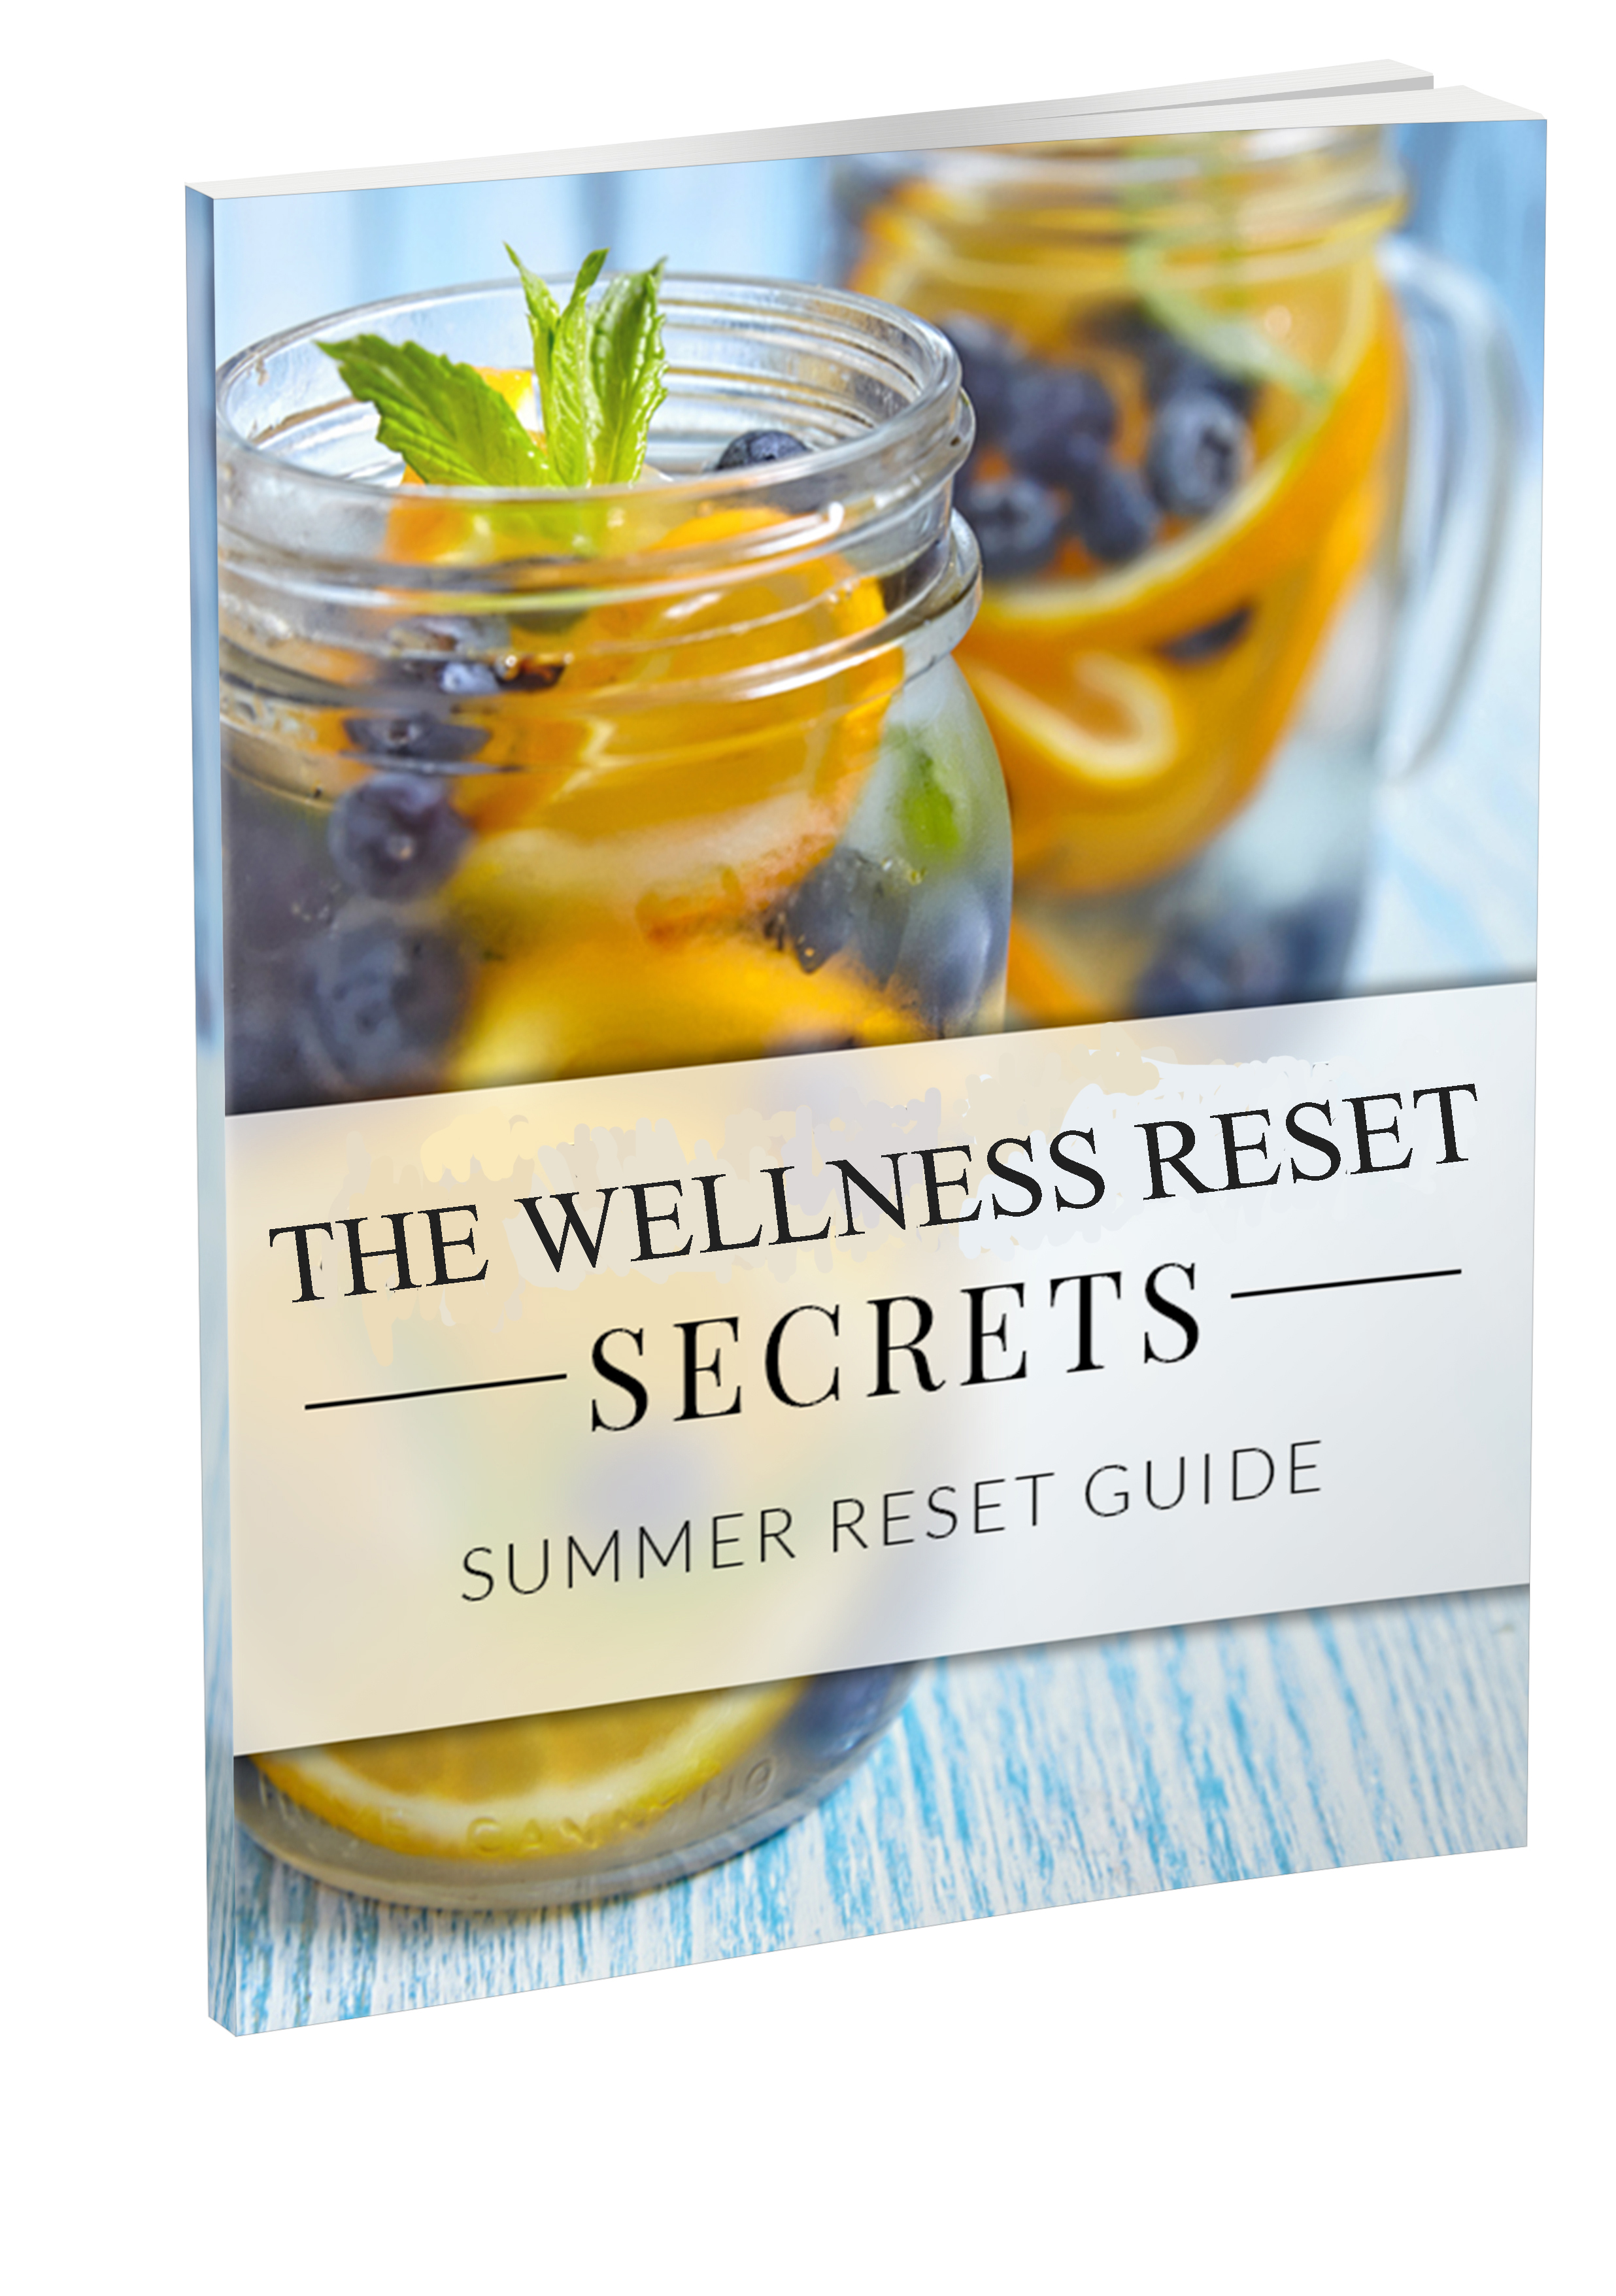 The Wellness Reset summer reset summer guide.jpg